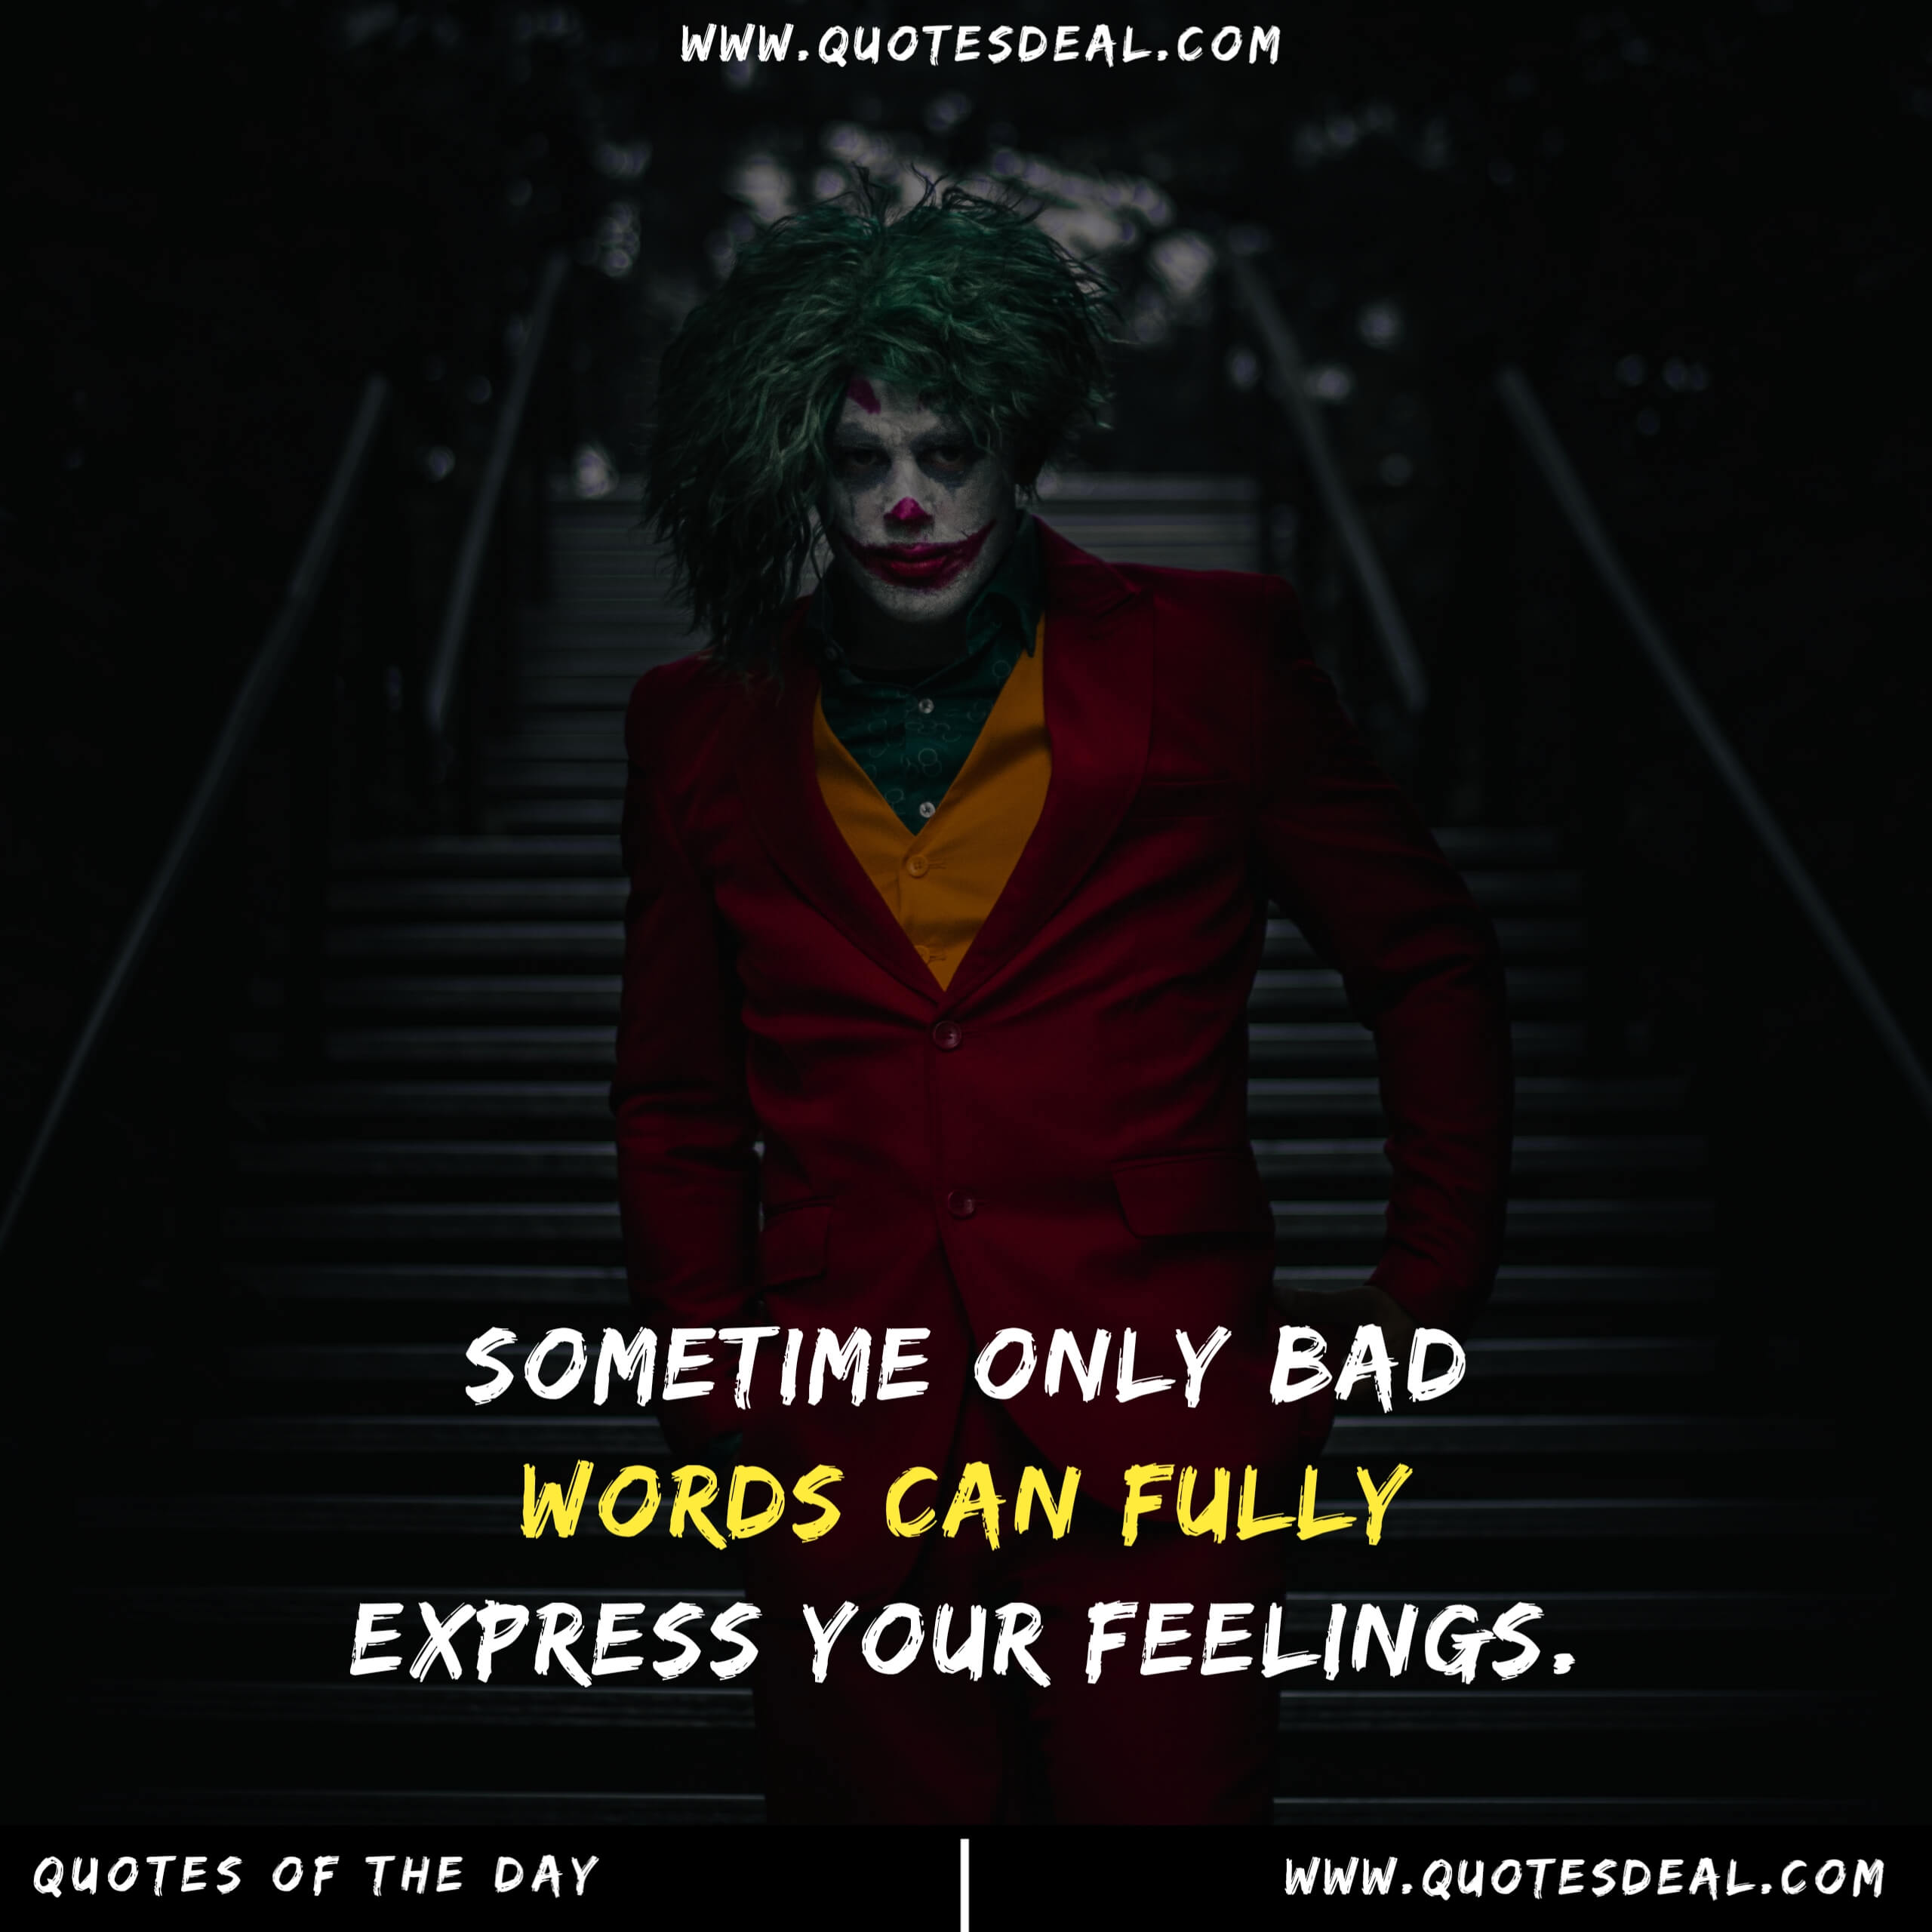 Sometime only bad words